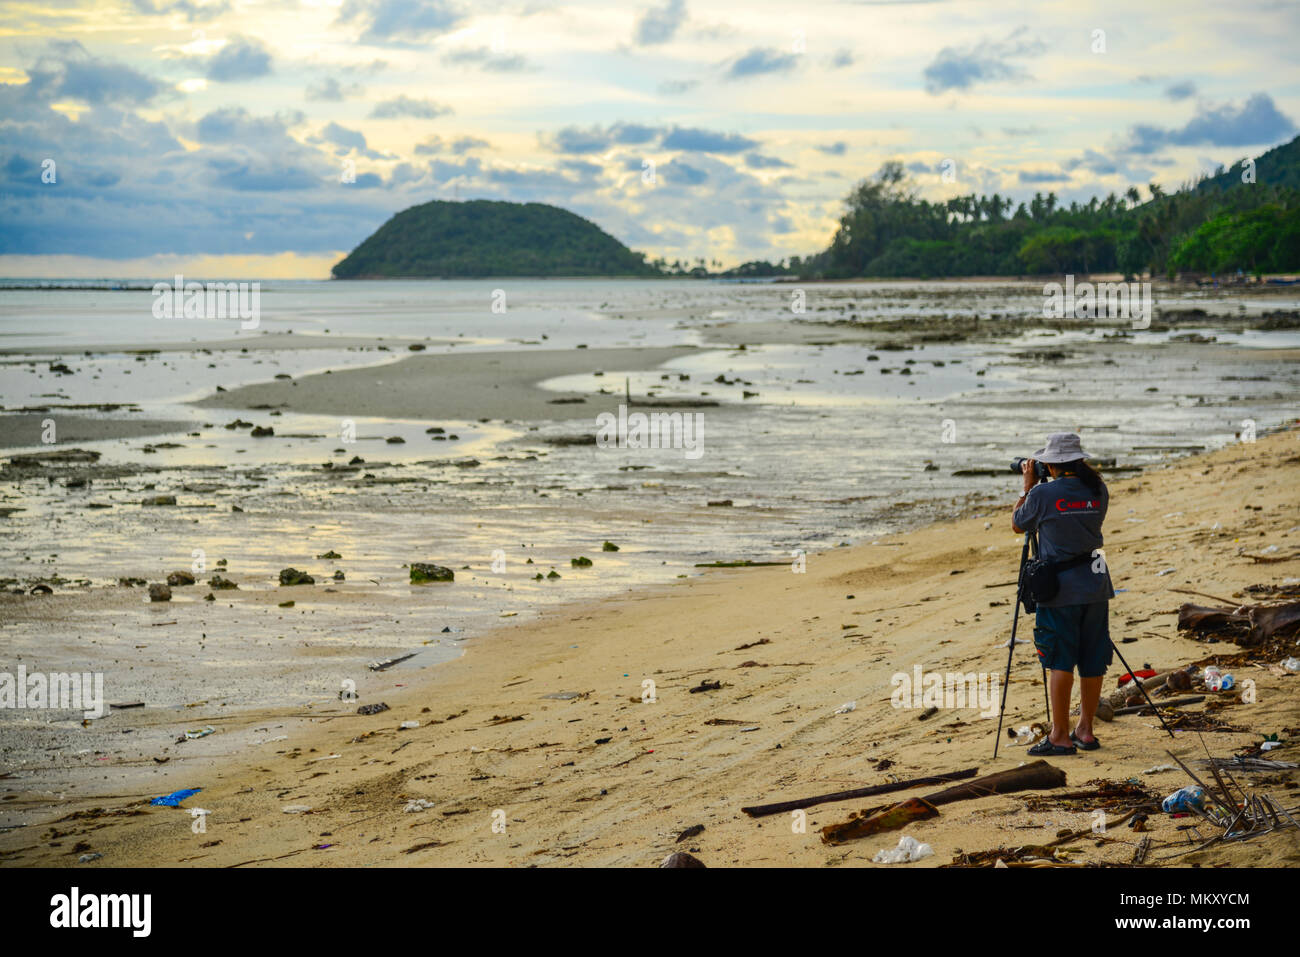 Surat Thani, Thailand - May 25, 2013: Photographer on dirty beach shooting view of sea and sky in Surat Thani, Thailand - Stock Image